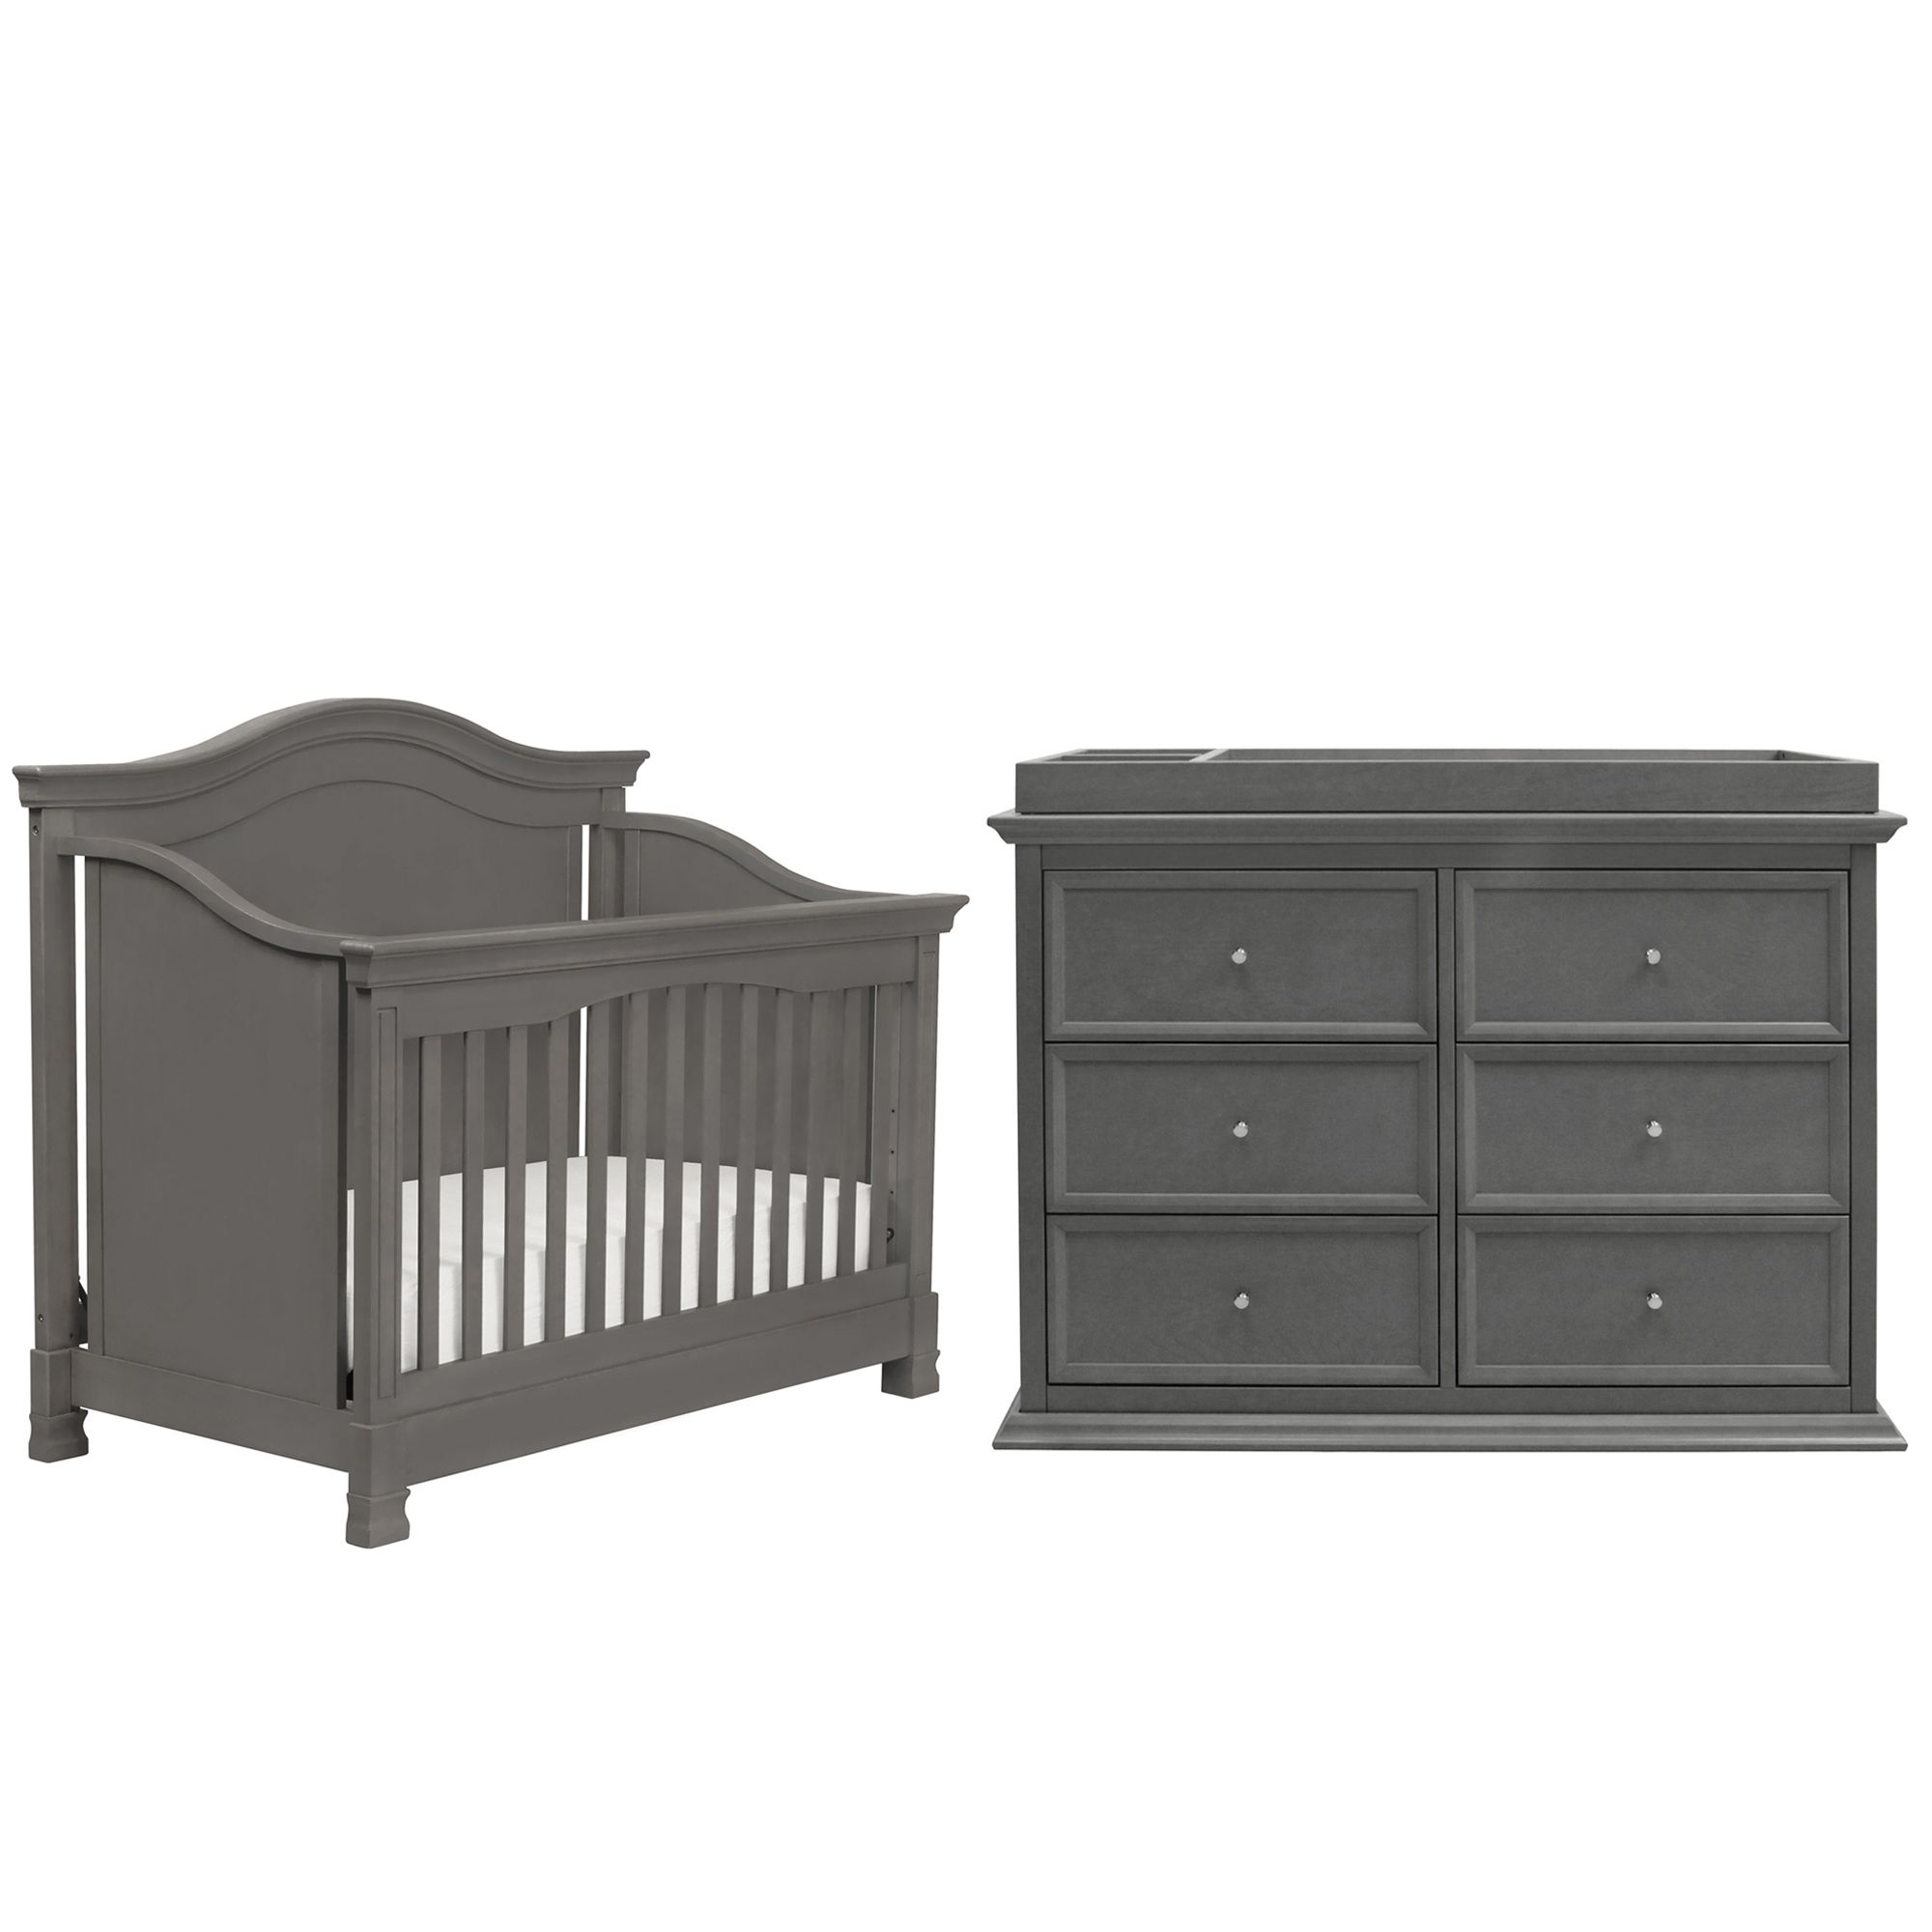 Million Dollar Baby Classic 3-Piece Louis Nursery Bundle Set in Manor Grey